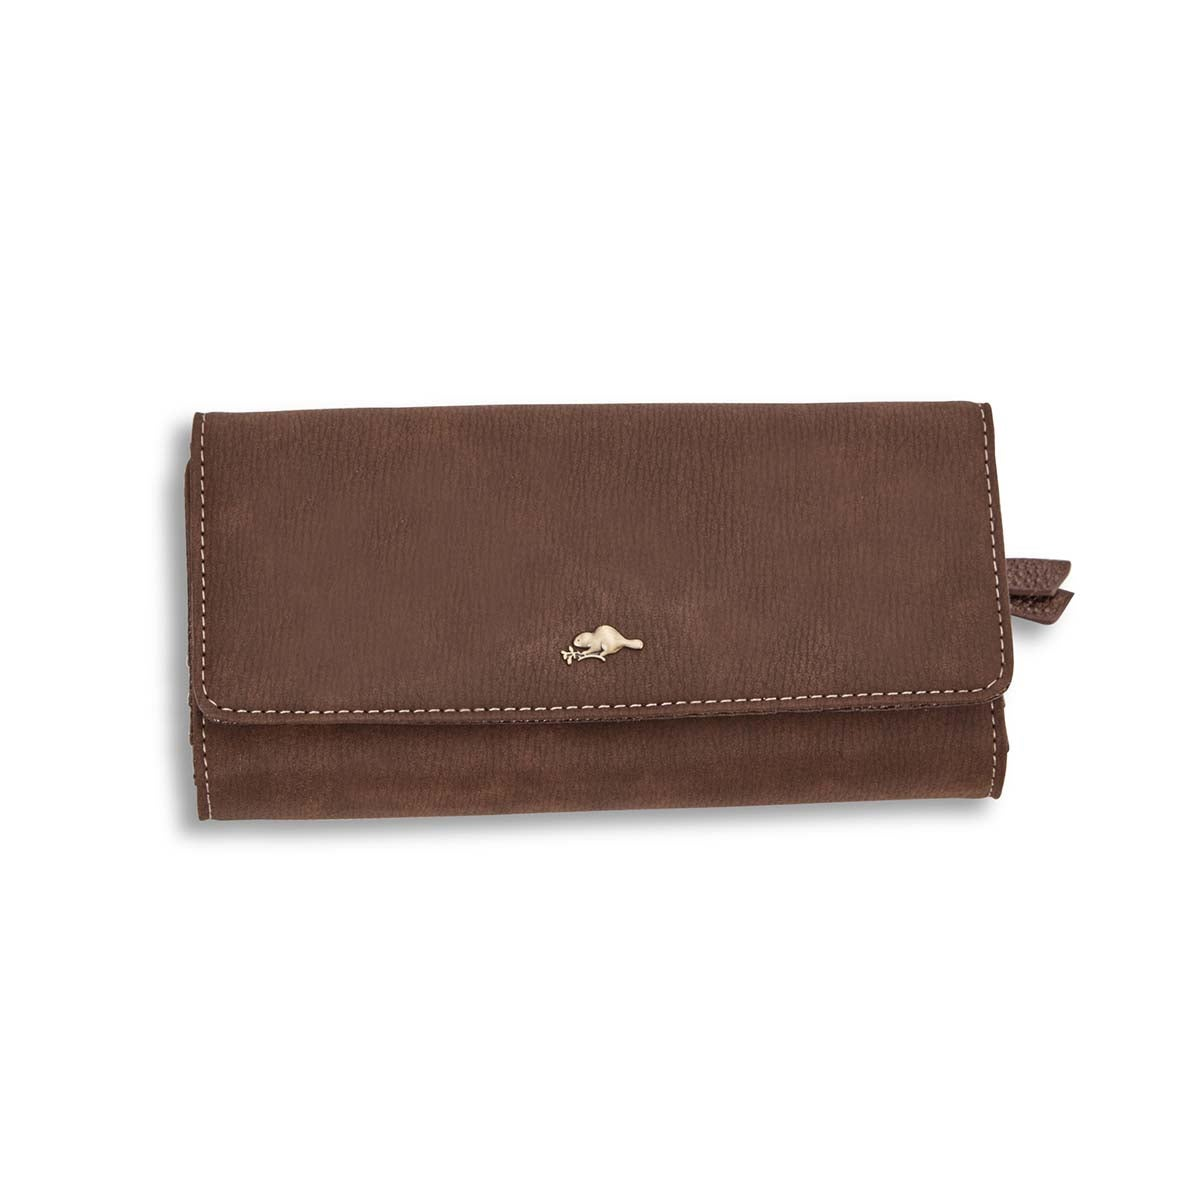 Lds Frost Collection earth deluxe clutch